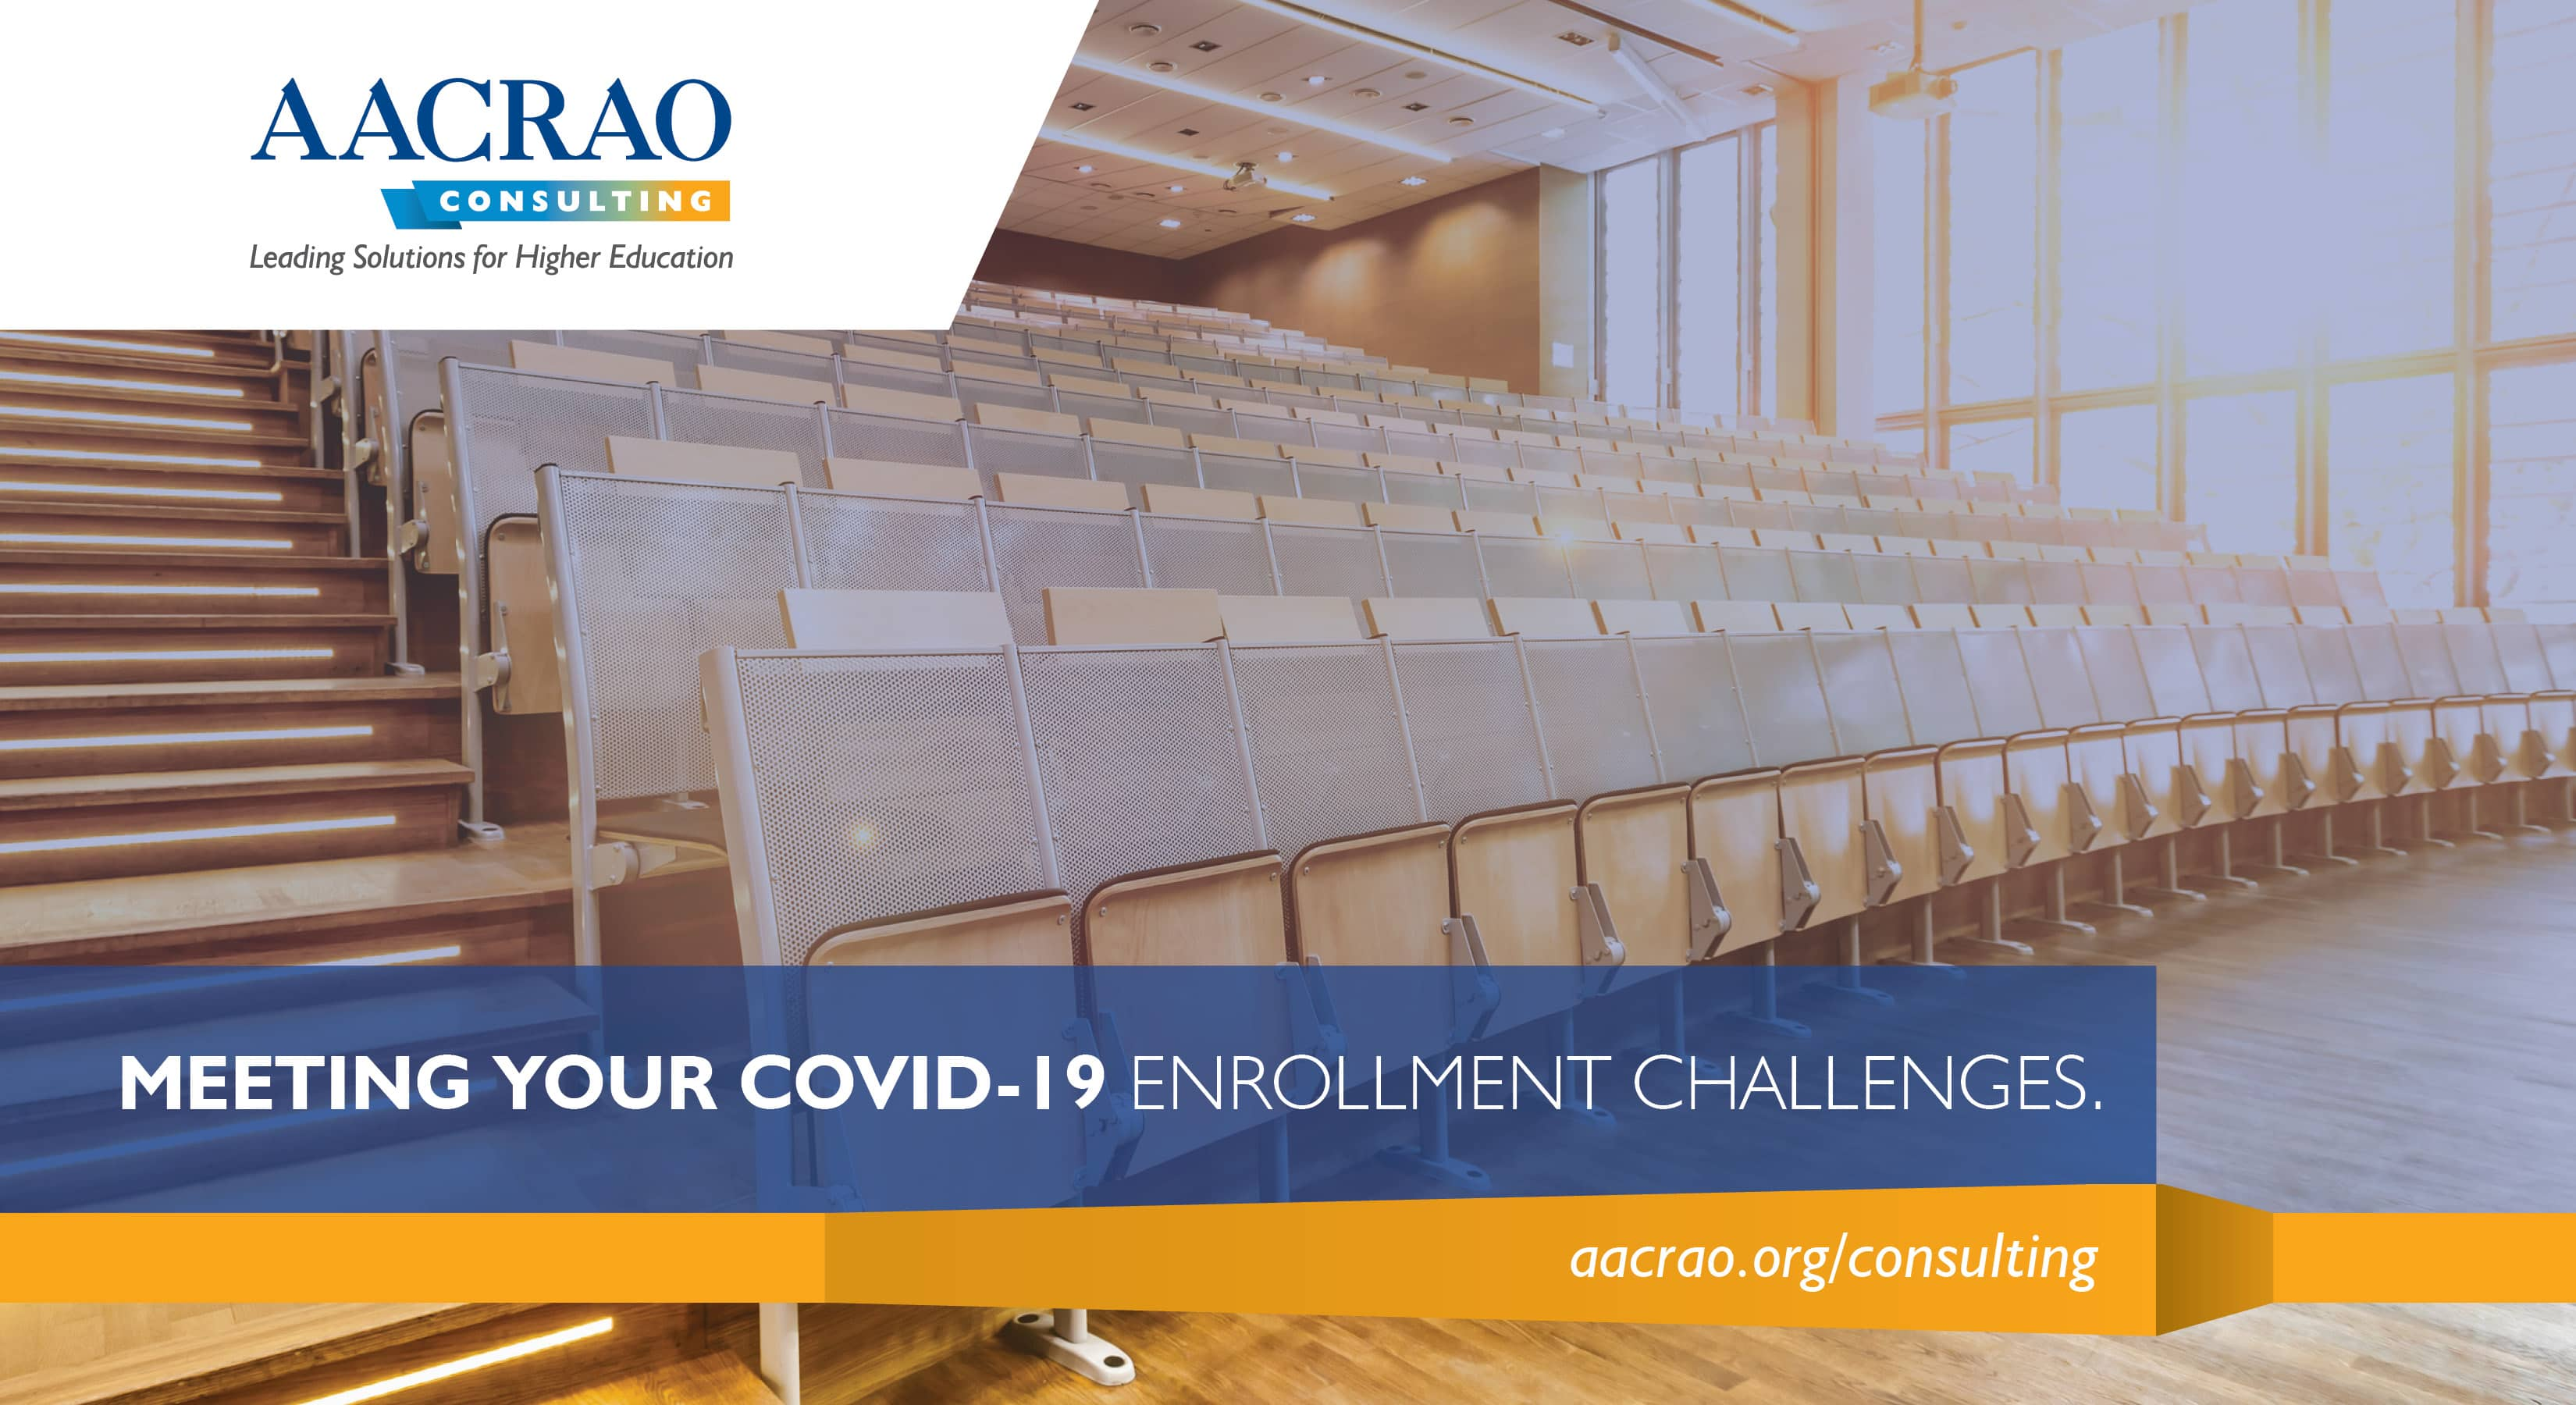 Meeting Your COVID-19 Enrollment Challenges